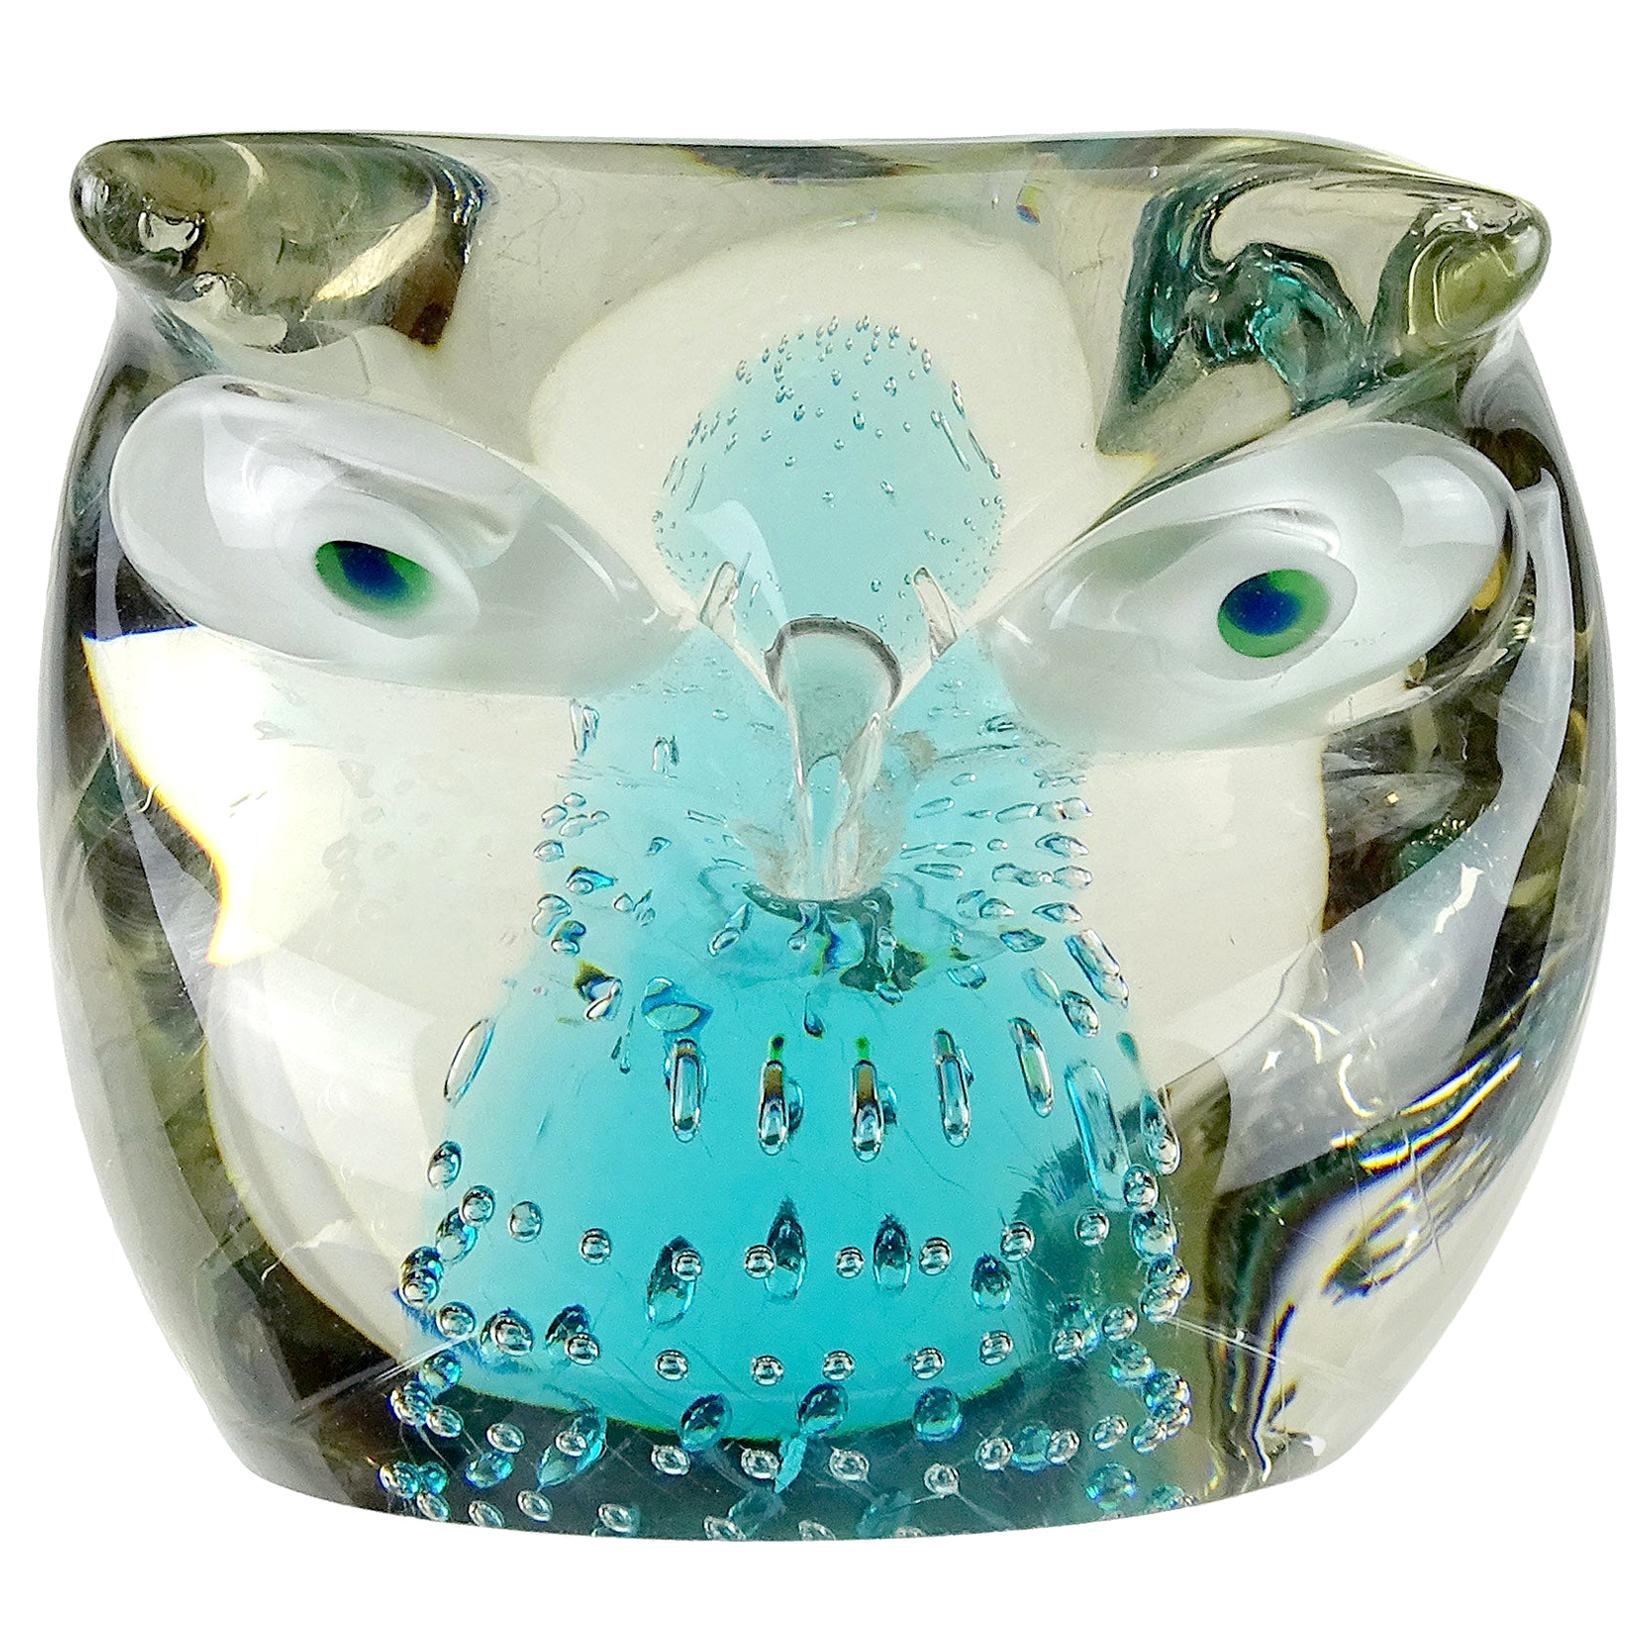 Cenedese Murano Sommerso Blue Core Italian Art Glass Owl Sculpture Paperweight